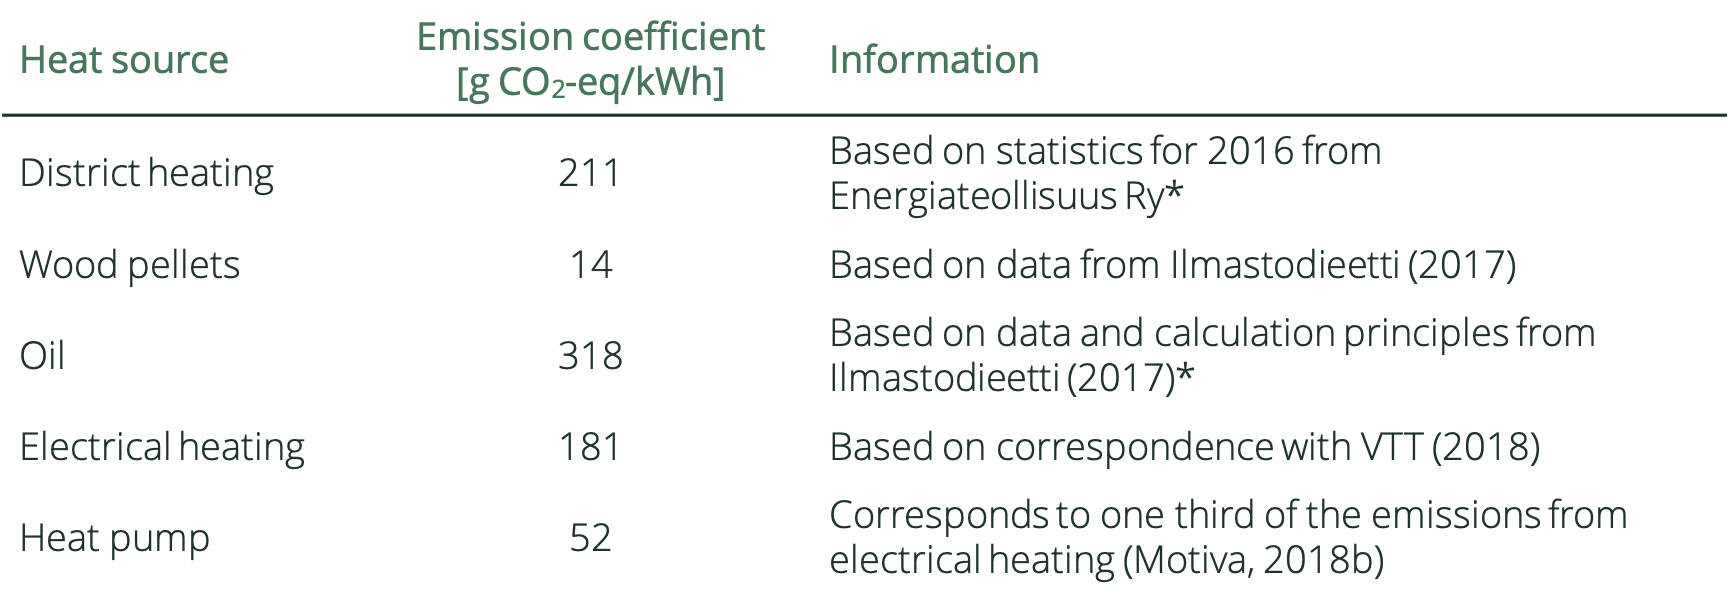 Table describing the greenhouse gas emissions from different heat sources.